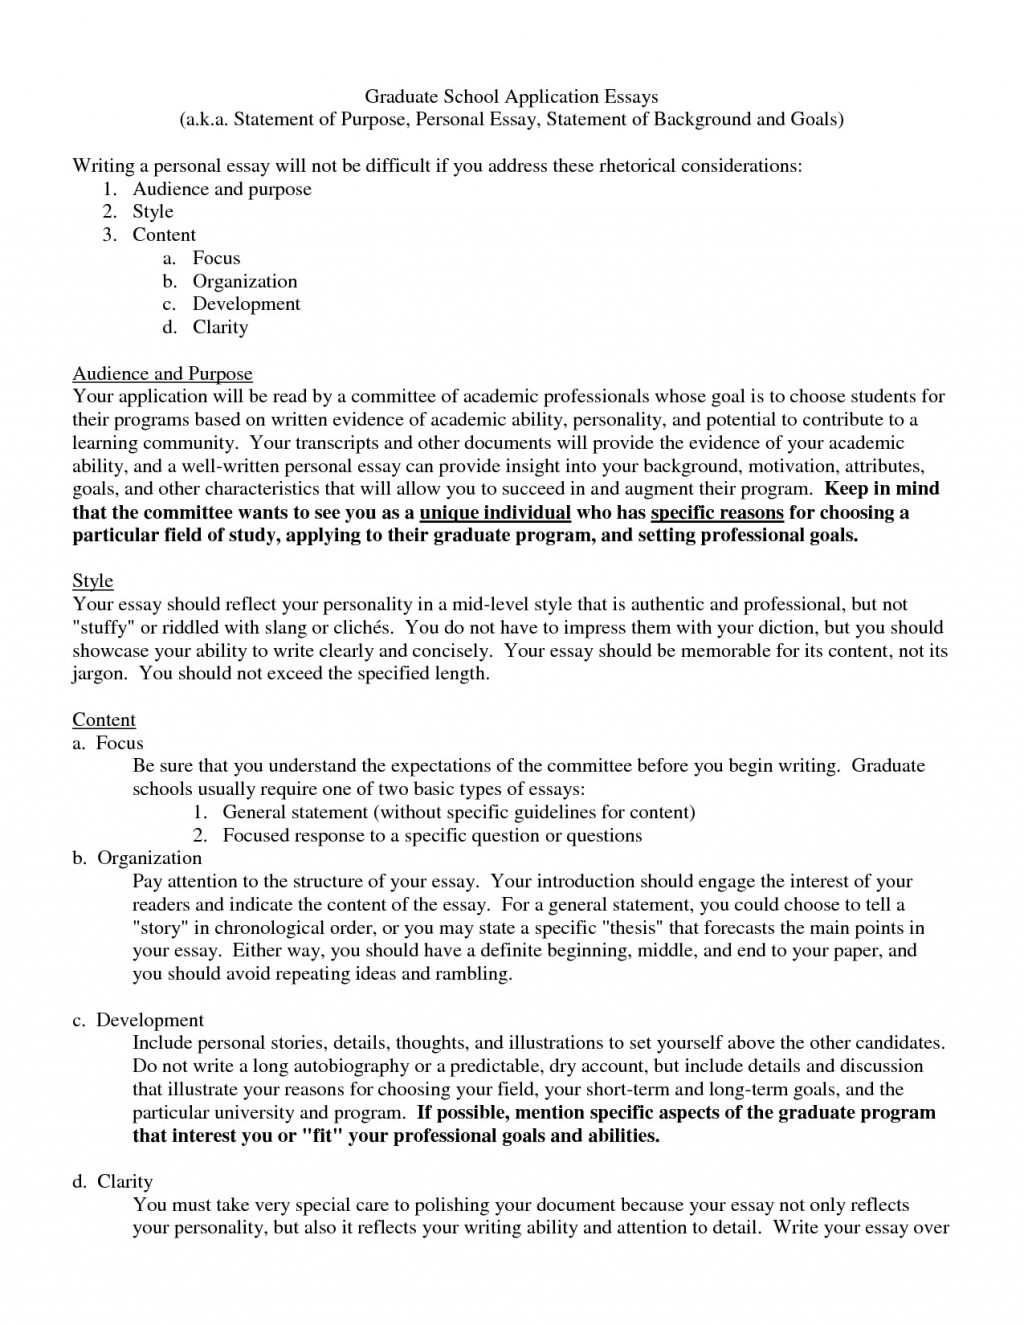 007 Essay For Graduate Admission Example School Admissions Examples Application Sample Hola Klonec Co Surprising Masters How To Write An Degree In Nursing Large